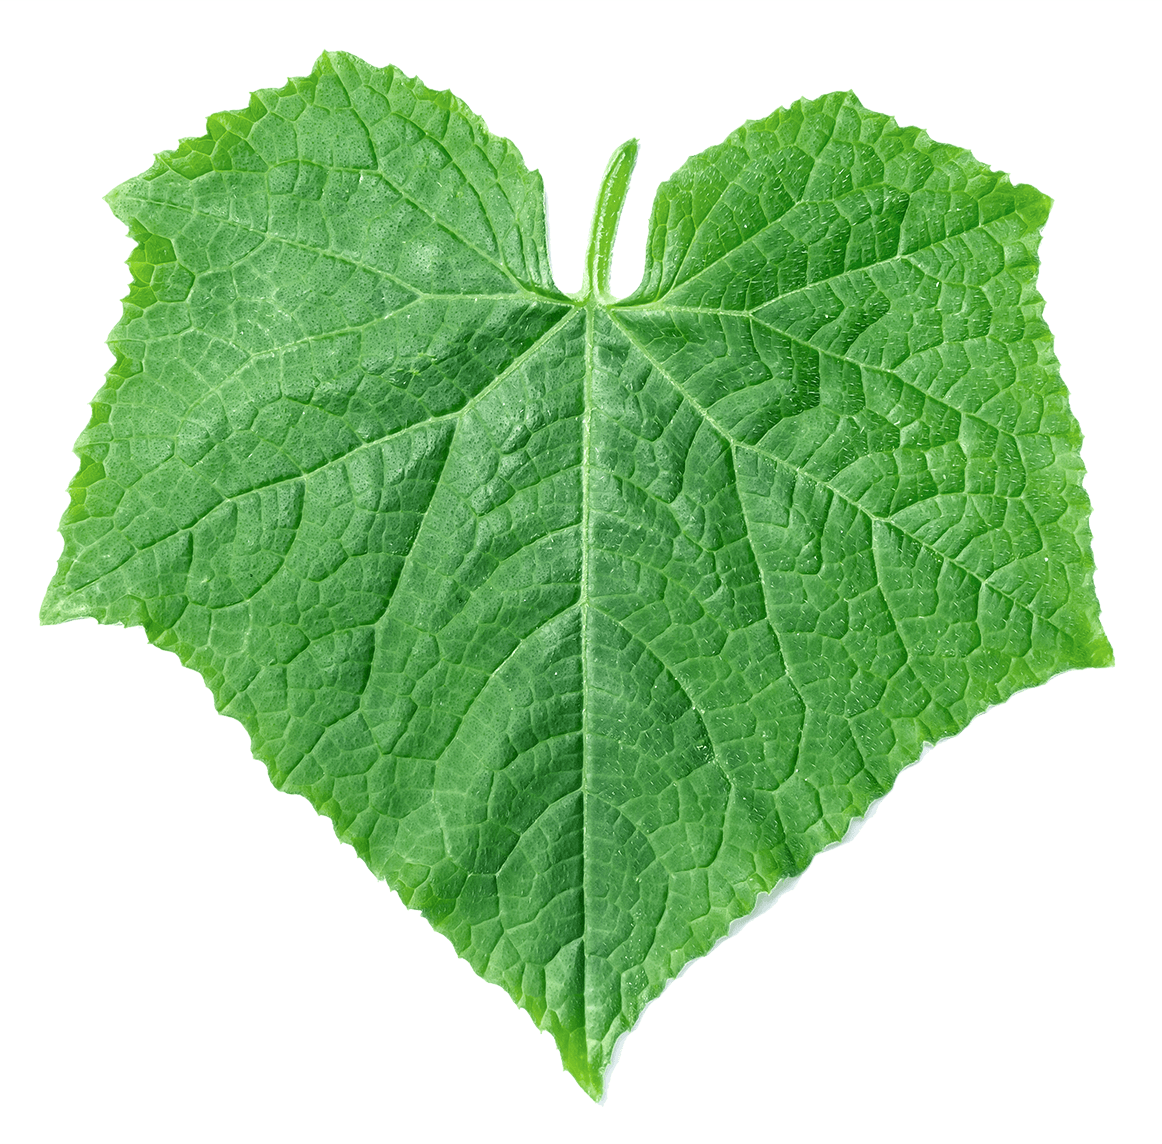 Image of a green pumpkin leaf